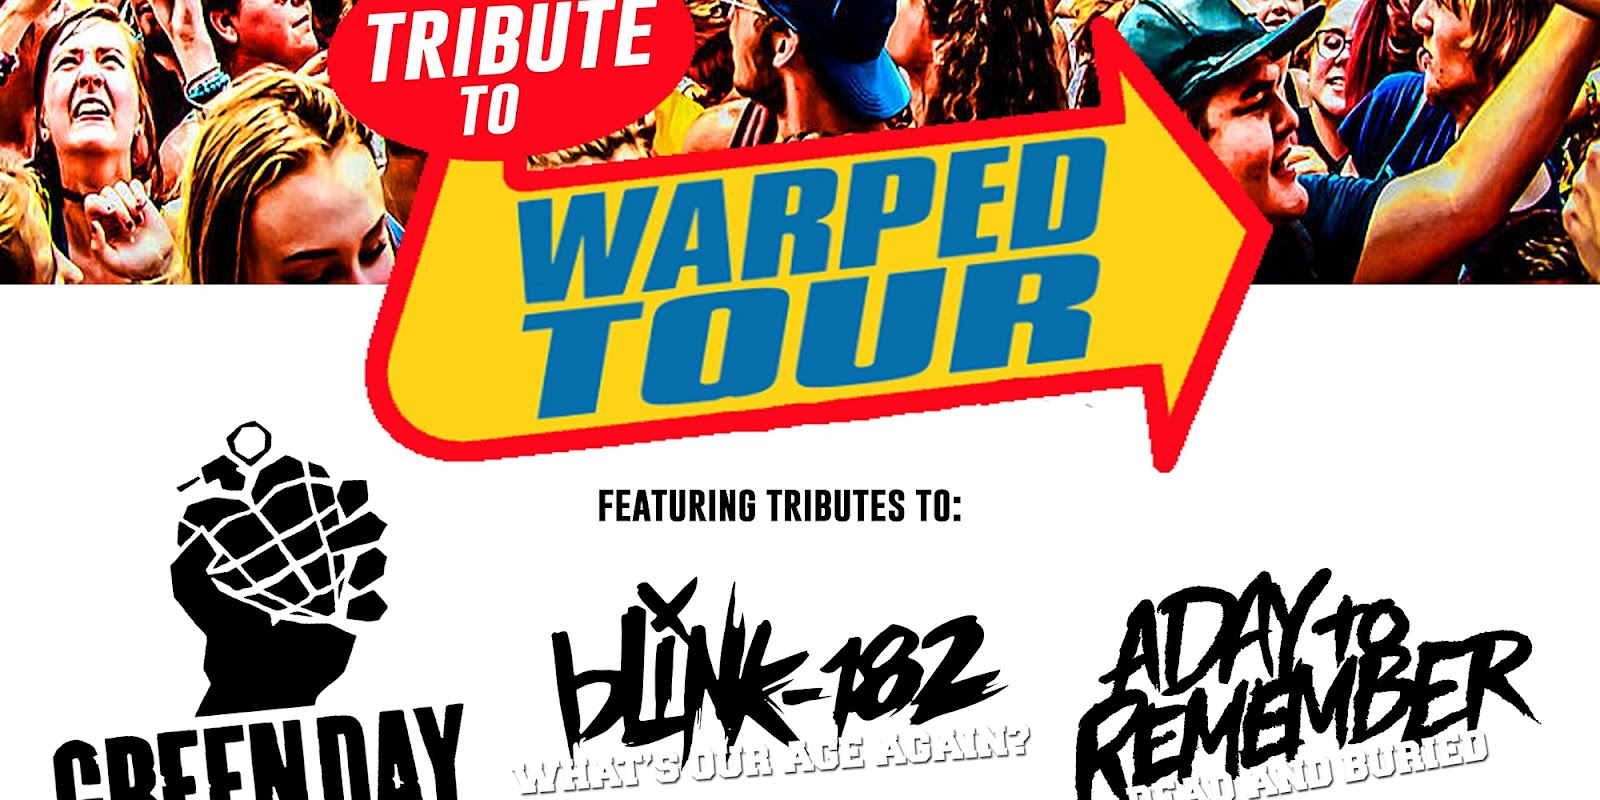 Warped Tour tribute concert